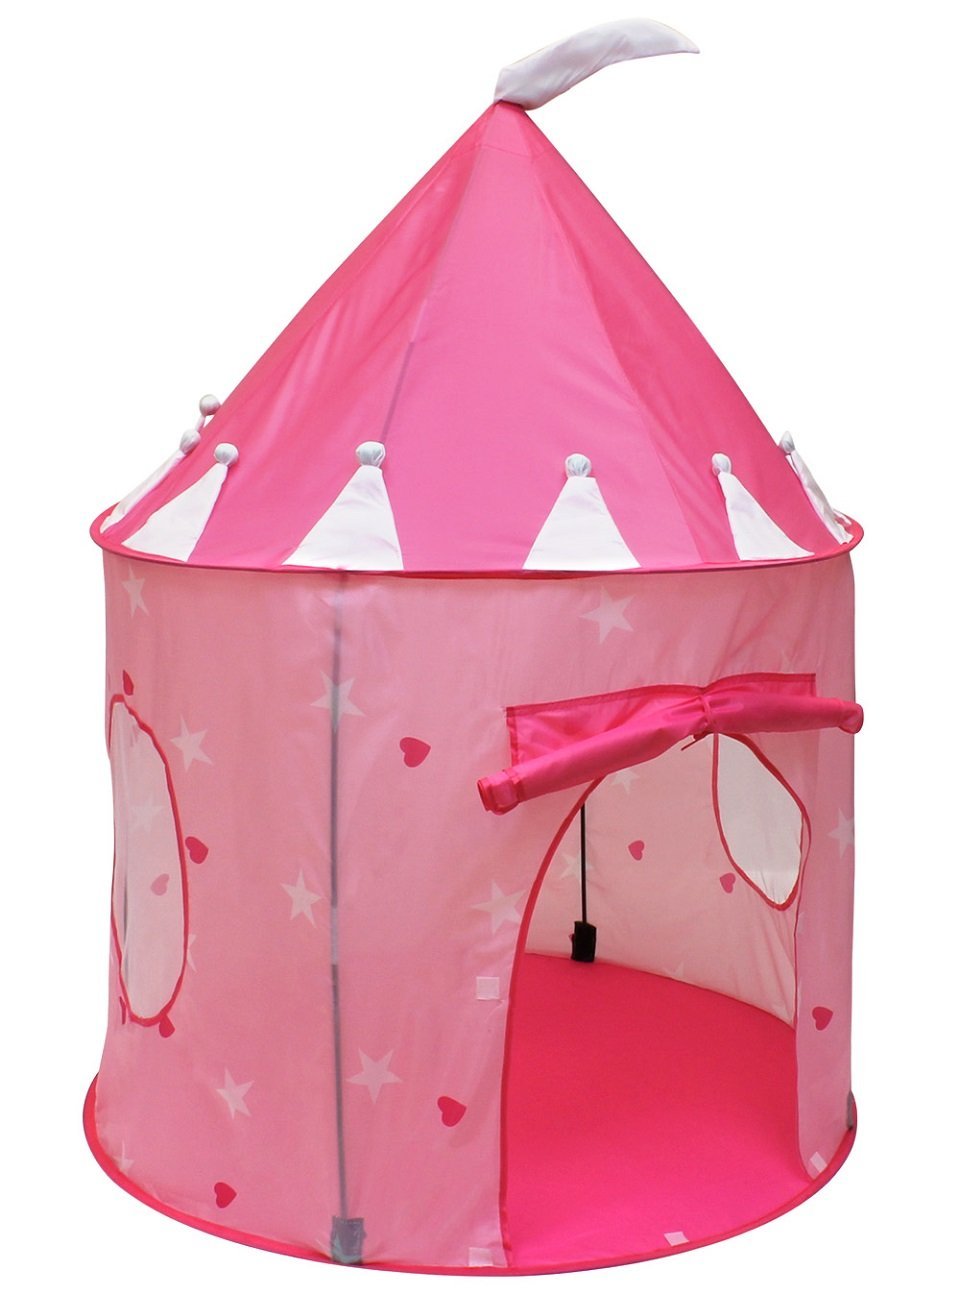 Amazon.com Click Nu0027 Play Girlu0027s Princess Castle Play Tent Pink Toys u0026 Games  sc 1 st  Amazon.com & Amazon.com: Click Nu0027 Play Girlu0027s Princess Castle Play Tent Pink ...